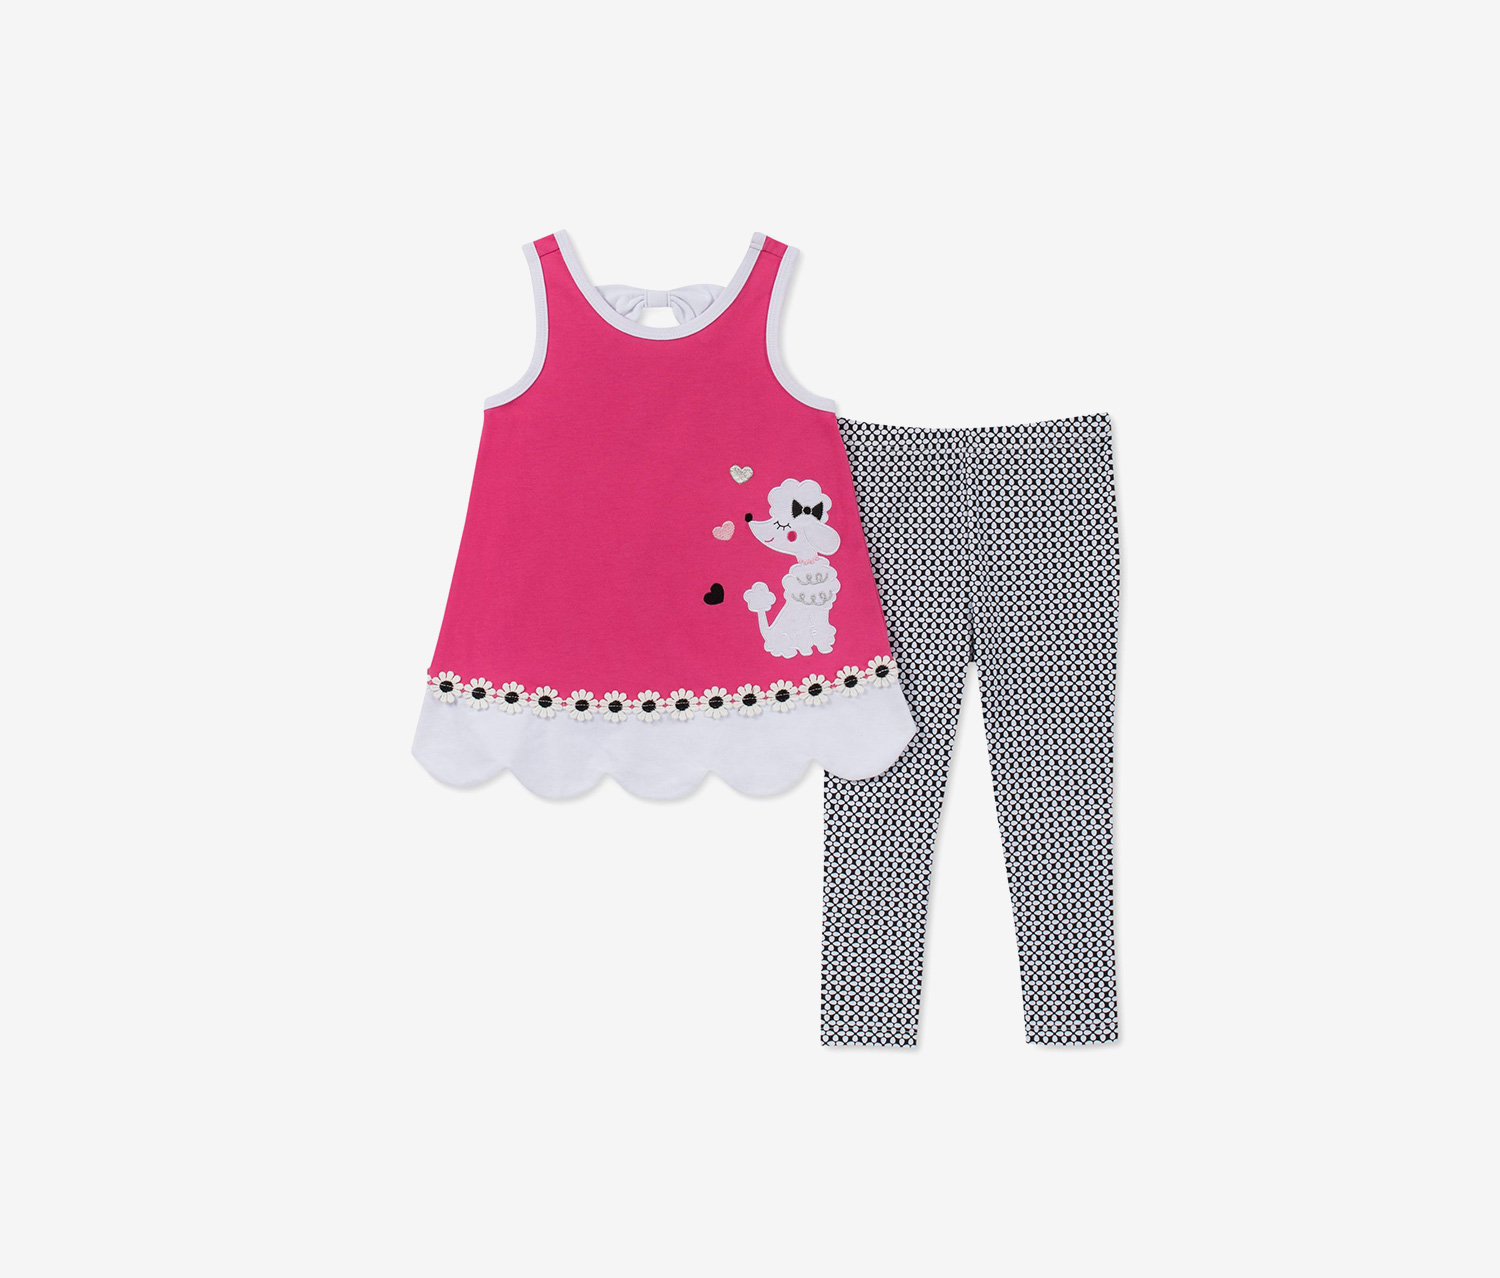 Toddler Girls 2-Pc. Poodle Tunic & Printed Leggings Set, Pink/Black